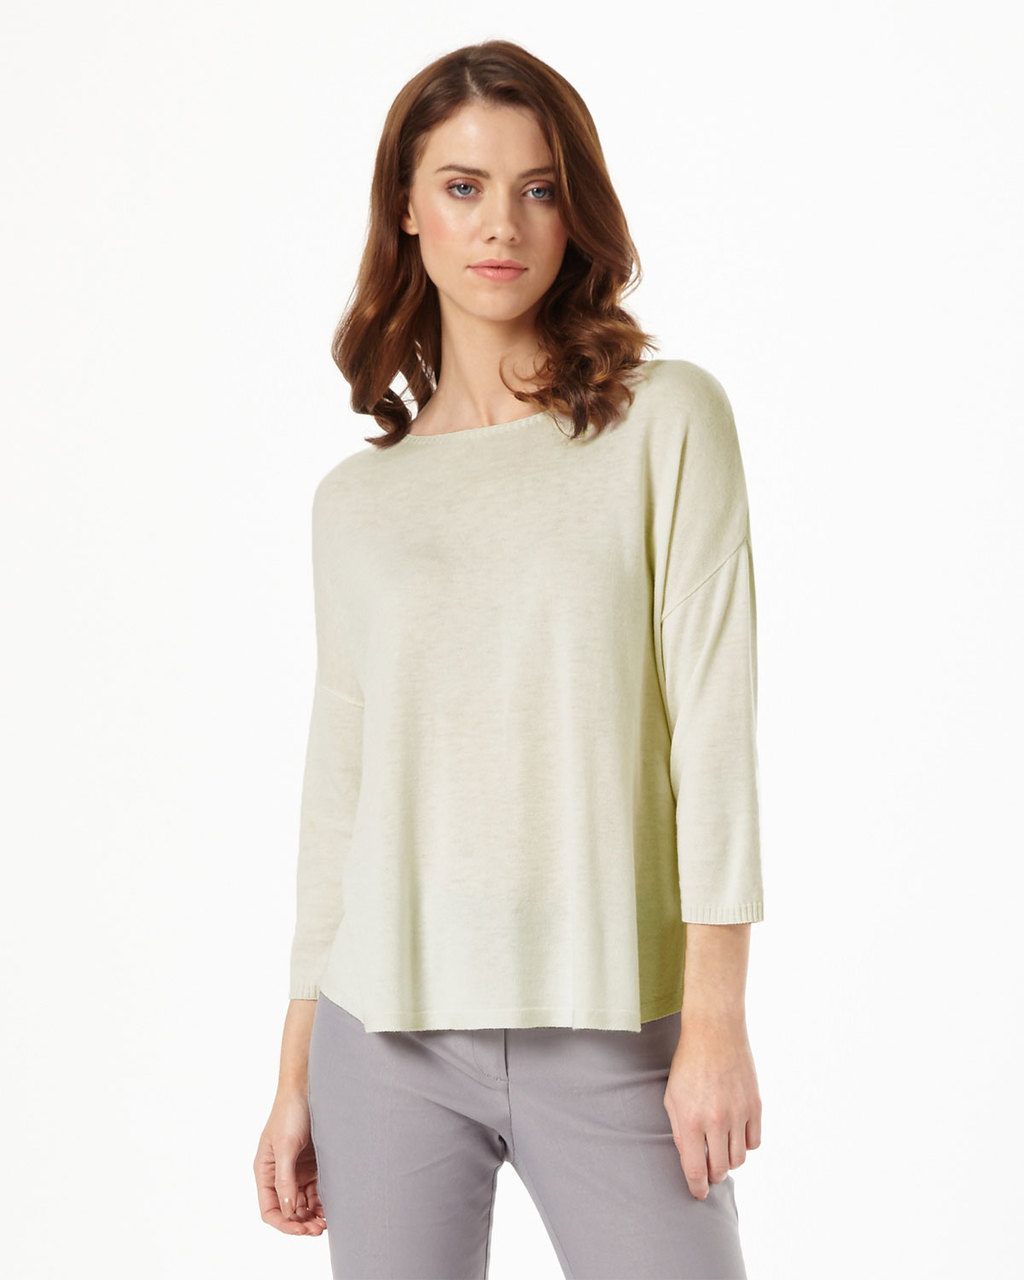 Christina Side Split Knit - pattern: plain; style: standard; predominant colour: ivory/cream; occasions: casual; length: standard; fit: slim fit; neckline: crew; sleeve length: 3/4 length; sleeve style: standard; texture group: knits/crochet; pattern type: fabric; fibres: viscose/rayon - mix; season: s/s 2016; wardrobe: basic